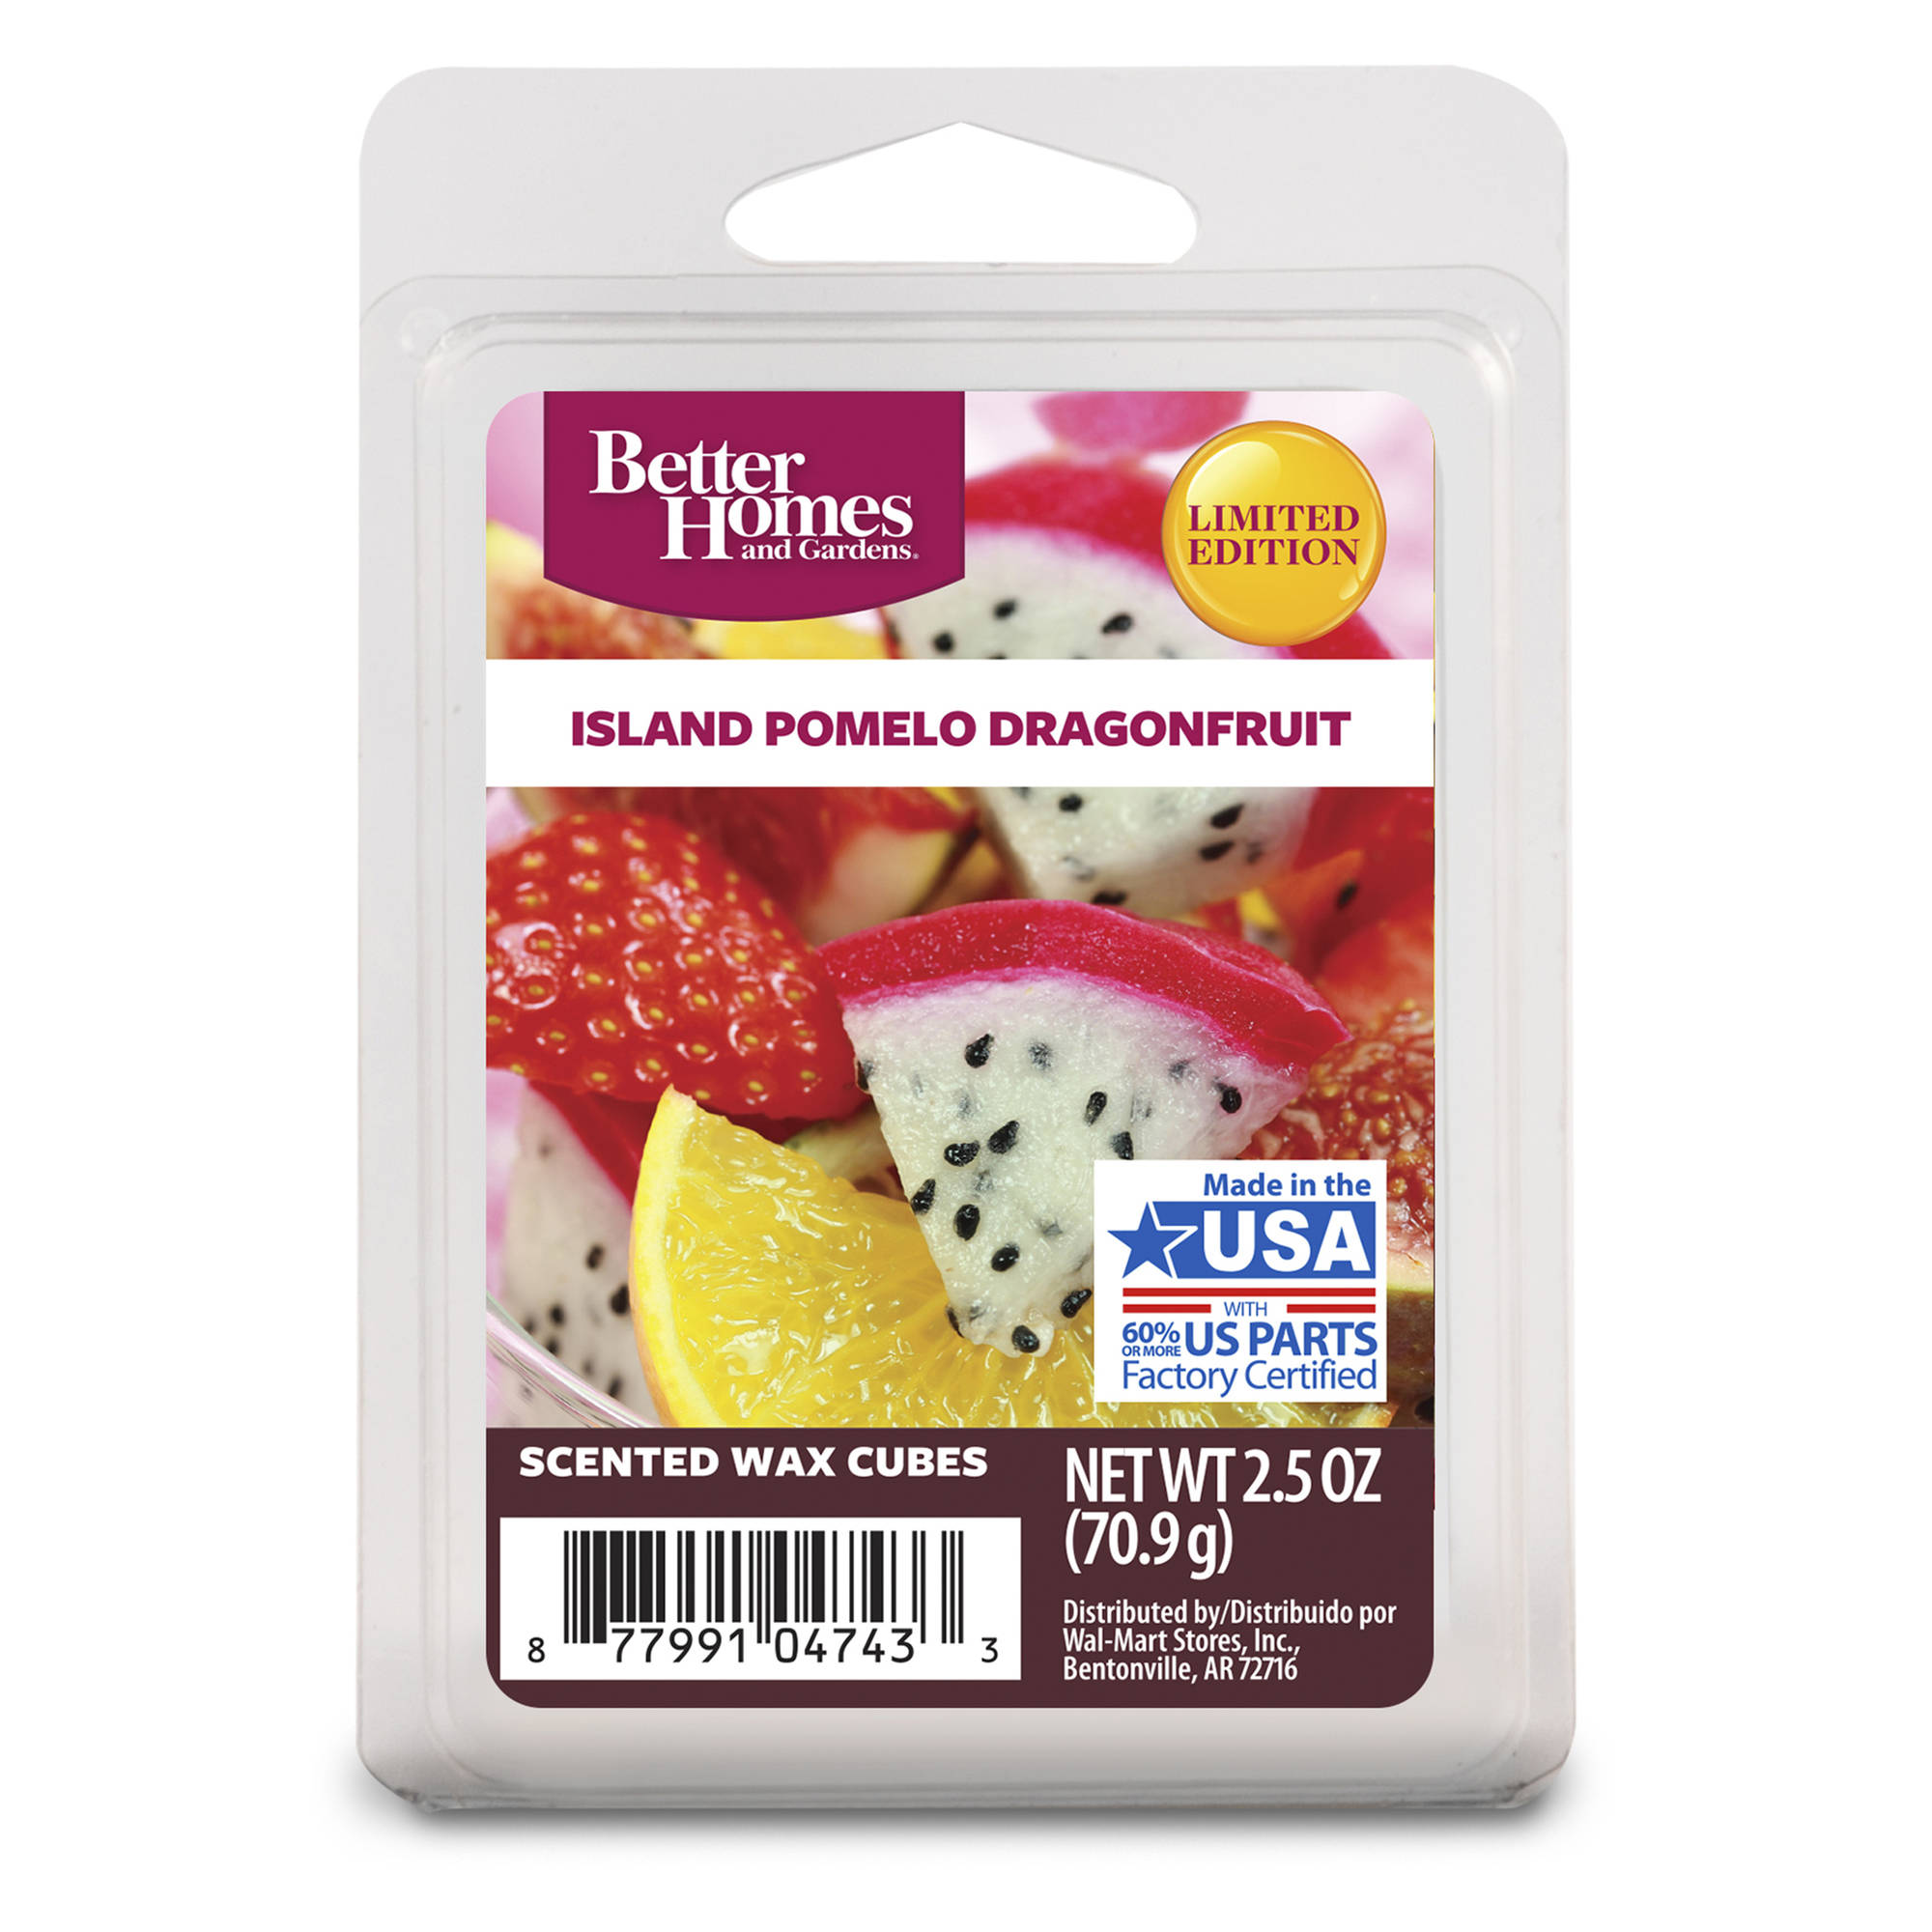 Better Homes and Gardens Wax Cubes, Island Pomelo Dragonfruit